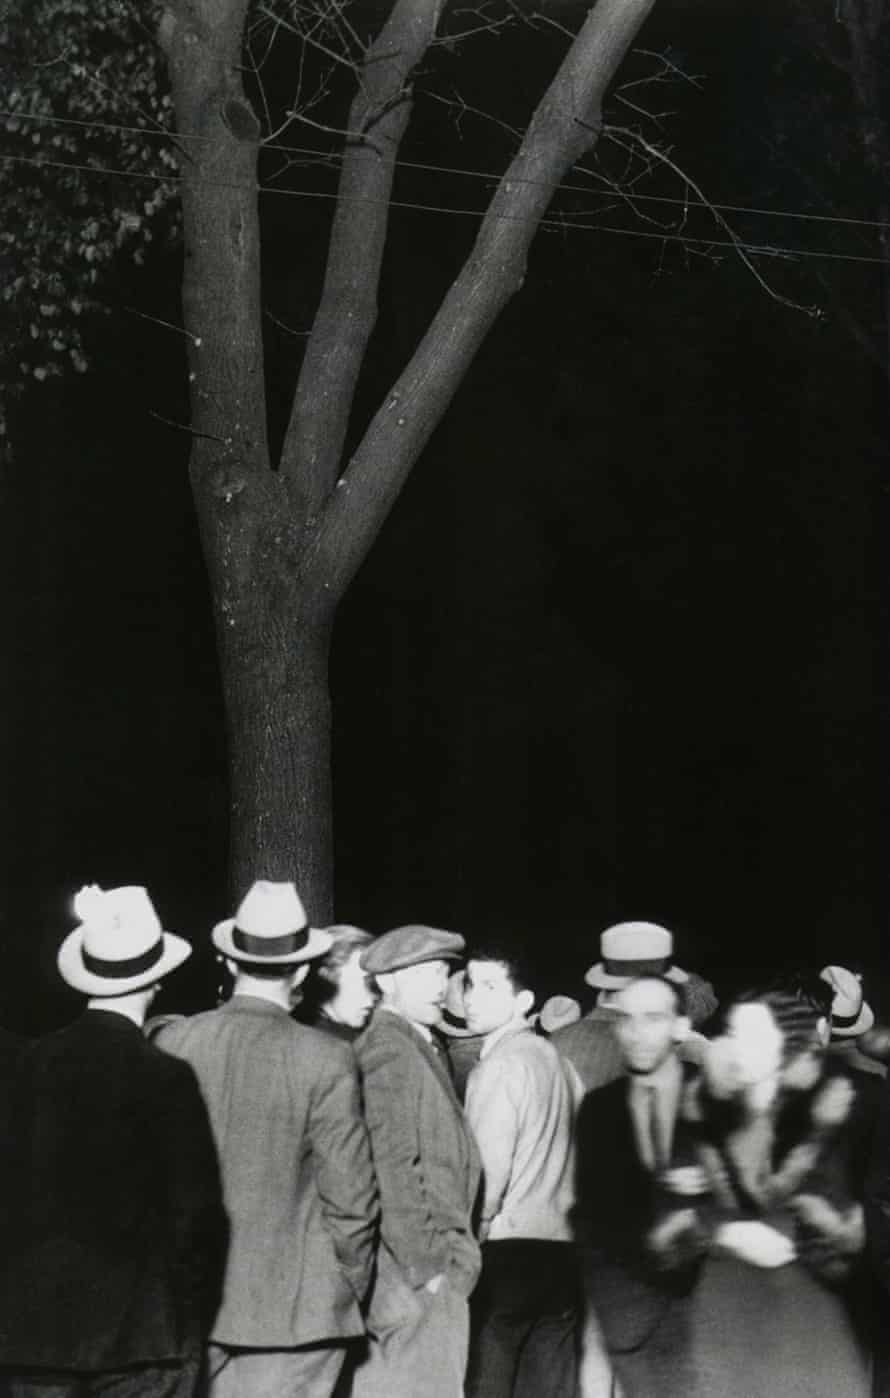 East First Street (St James Park) from the series 'Erased Lynchings', 2013